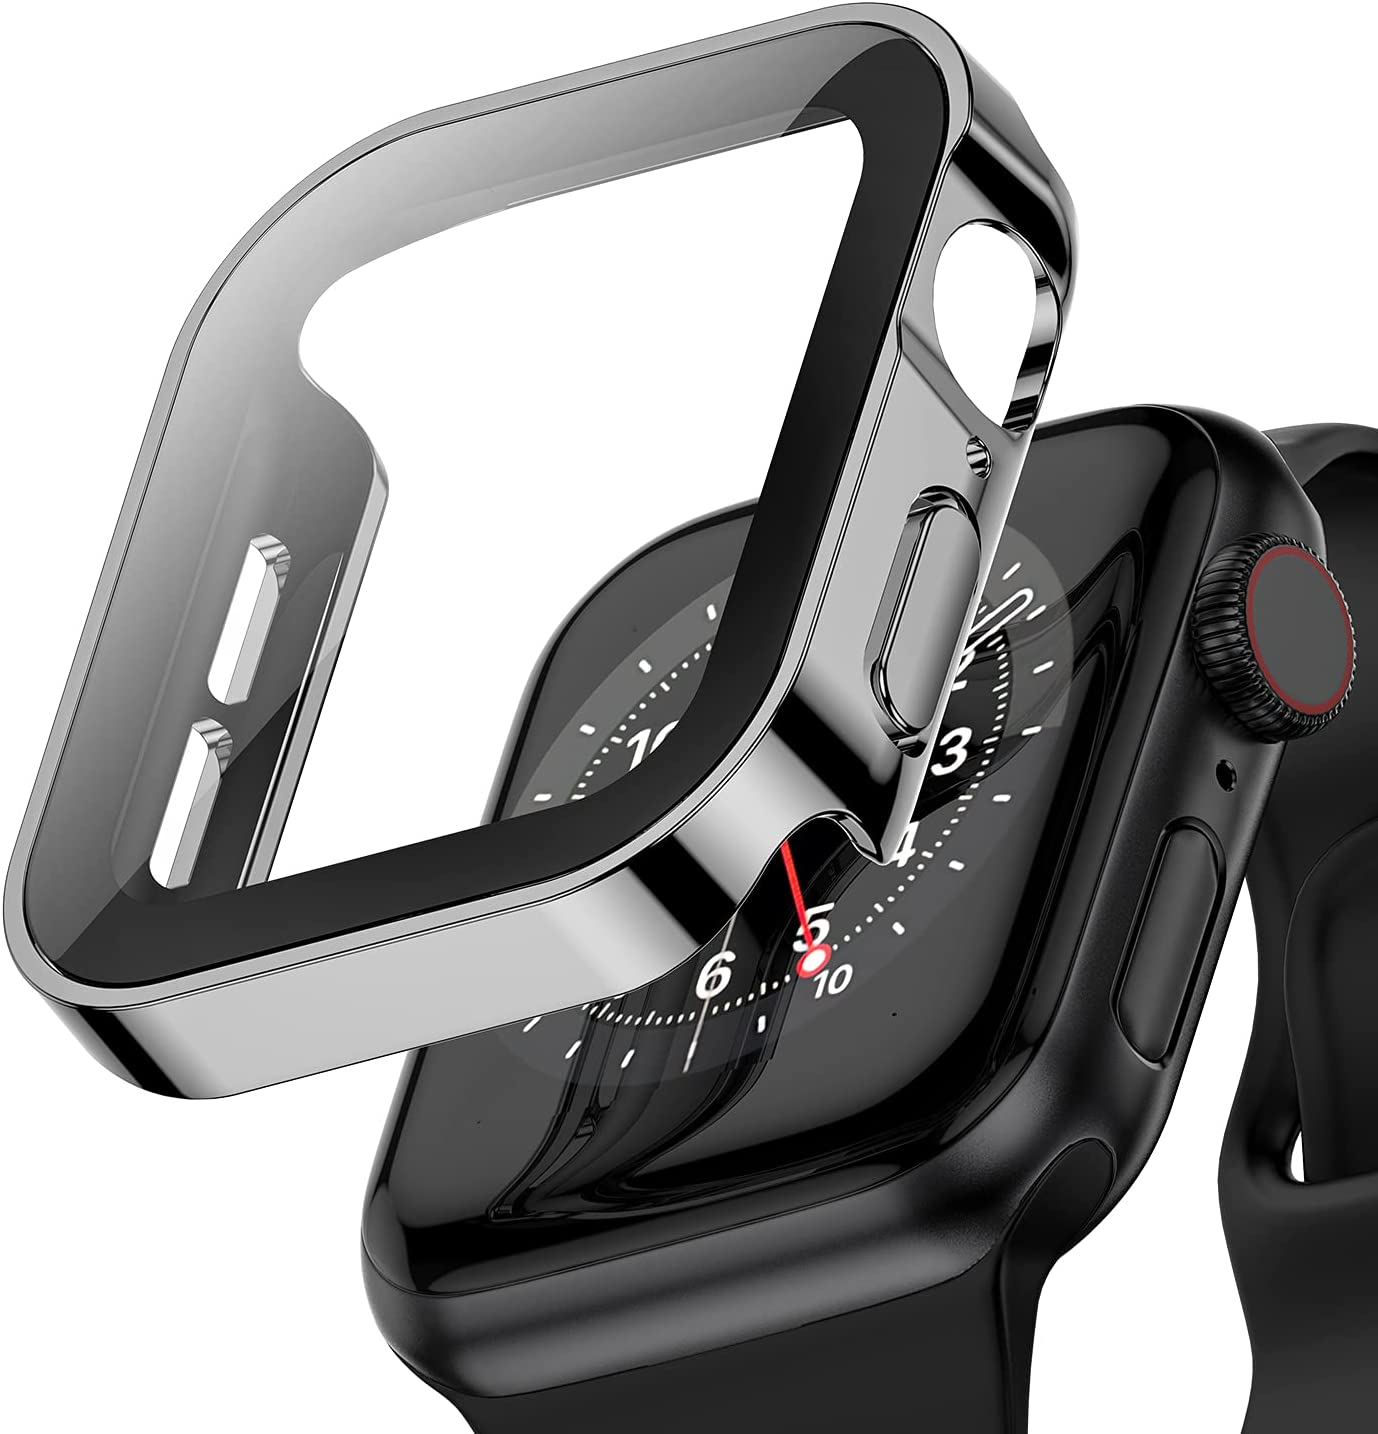 Applaro Black Hard Case with Tempered Glass Compatible with Apple Watch Series 6 SE Series 5 Series 4 40mm, Ultra-Thin Durable Waterproof Protective Cover for iWatch Screen Protector